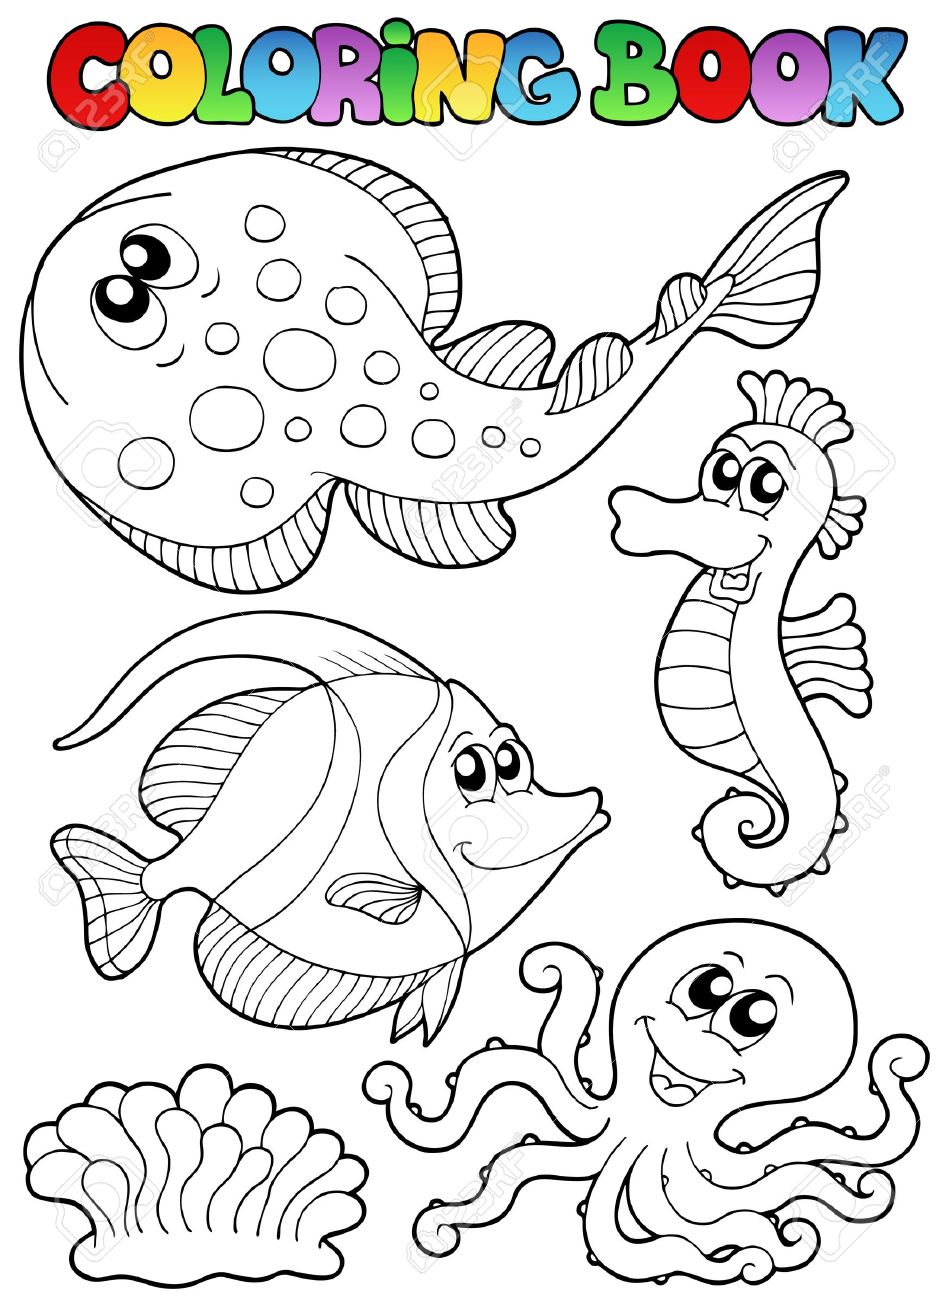 Coloring Book With Sea Animals 3 - Vector Illustration. Royalty ...